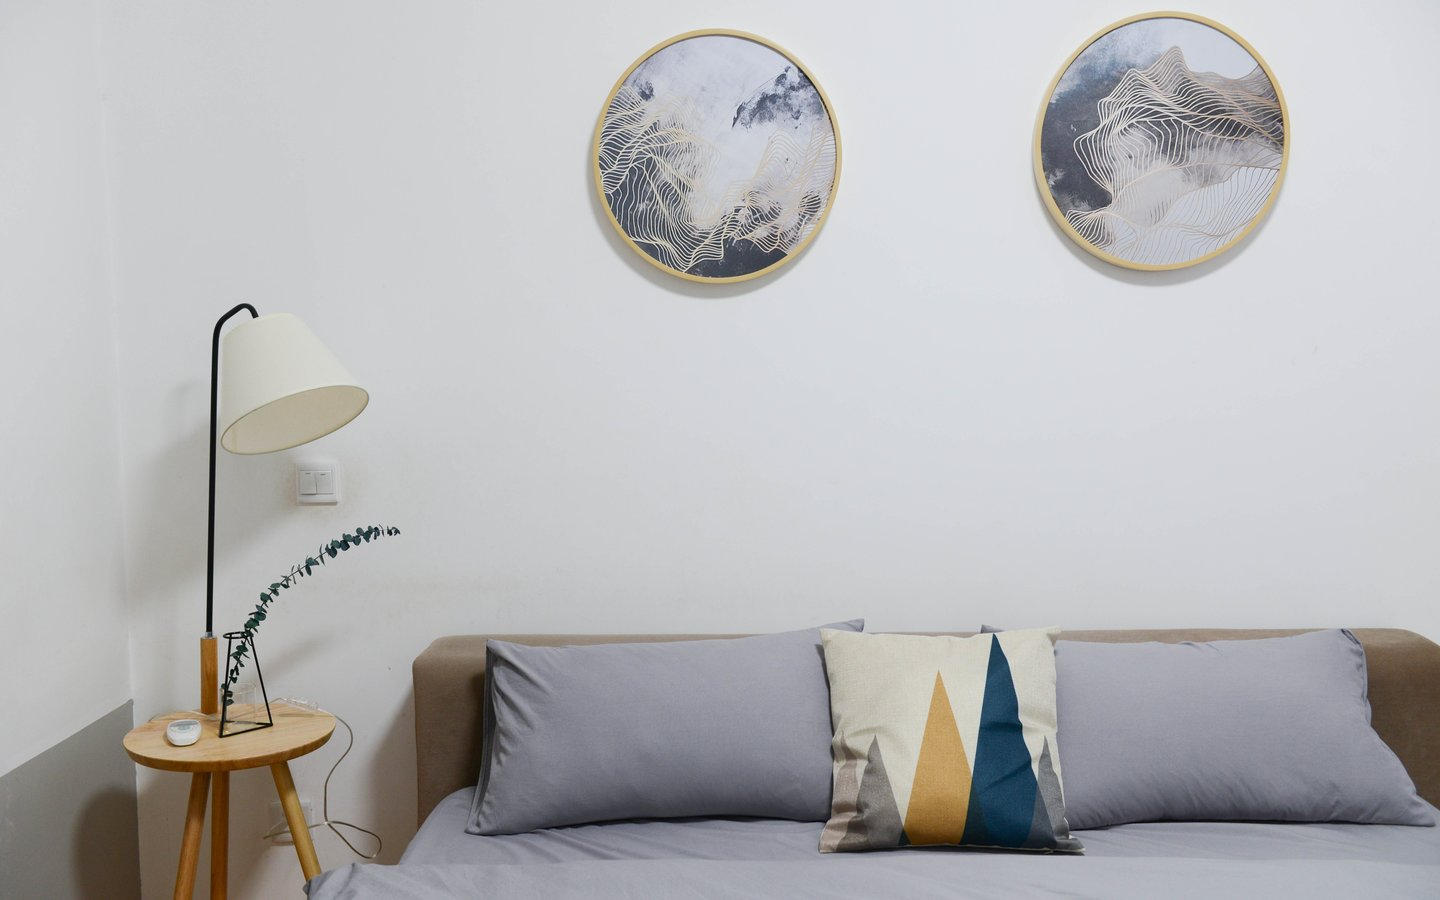 A bed with oval shaped arts on the wall